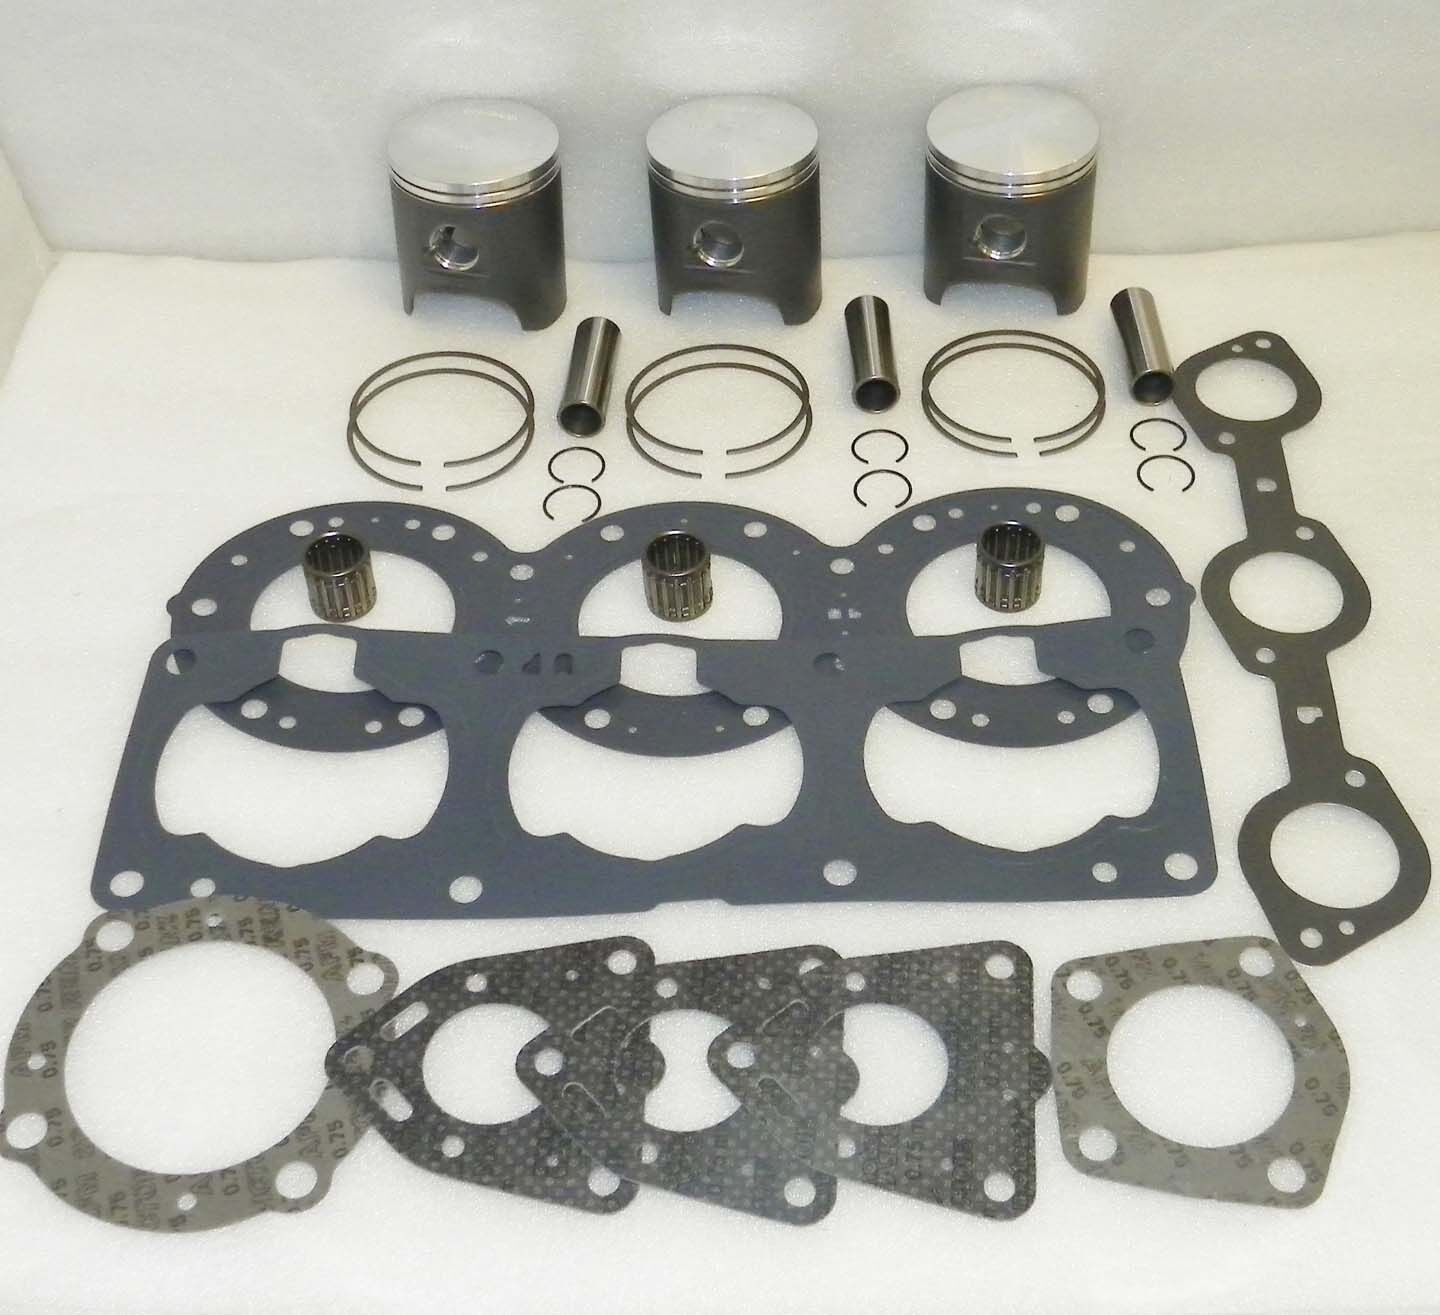 Top End Rebuild Set Std Wsm Kawasaki 97-98 Stx 900 Wsm Std Platinum 010-840-20P Wsm 010- b7246c